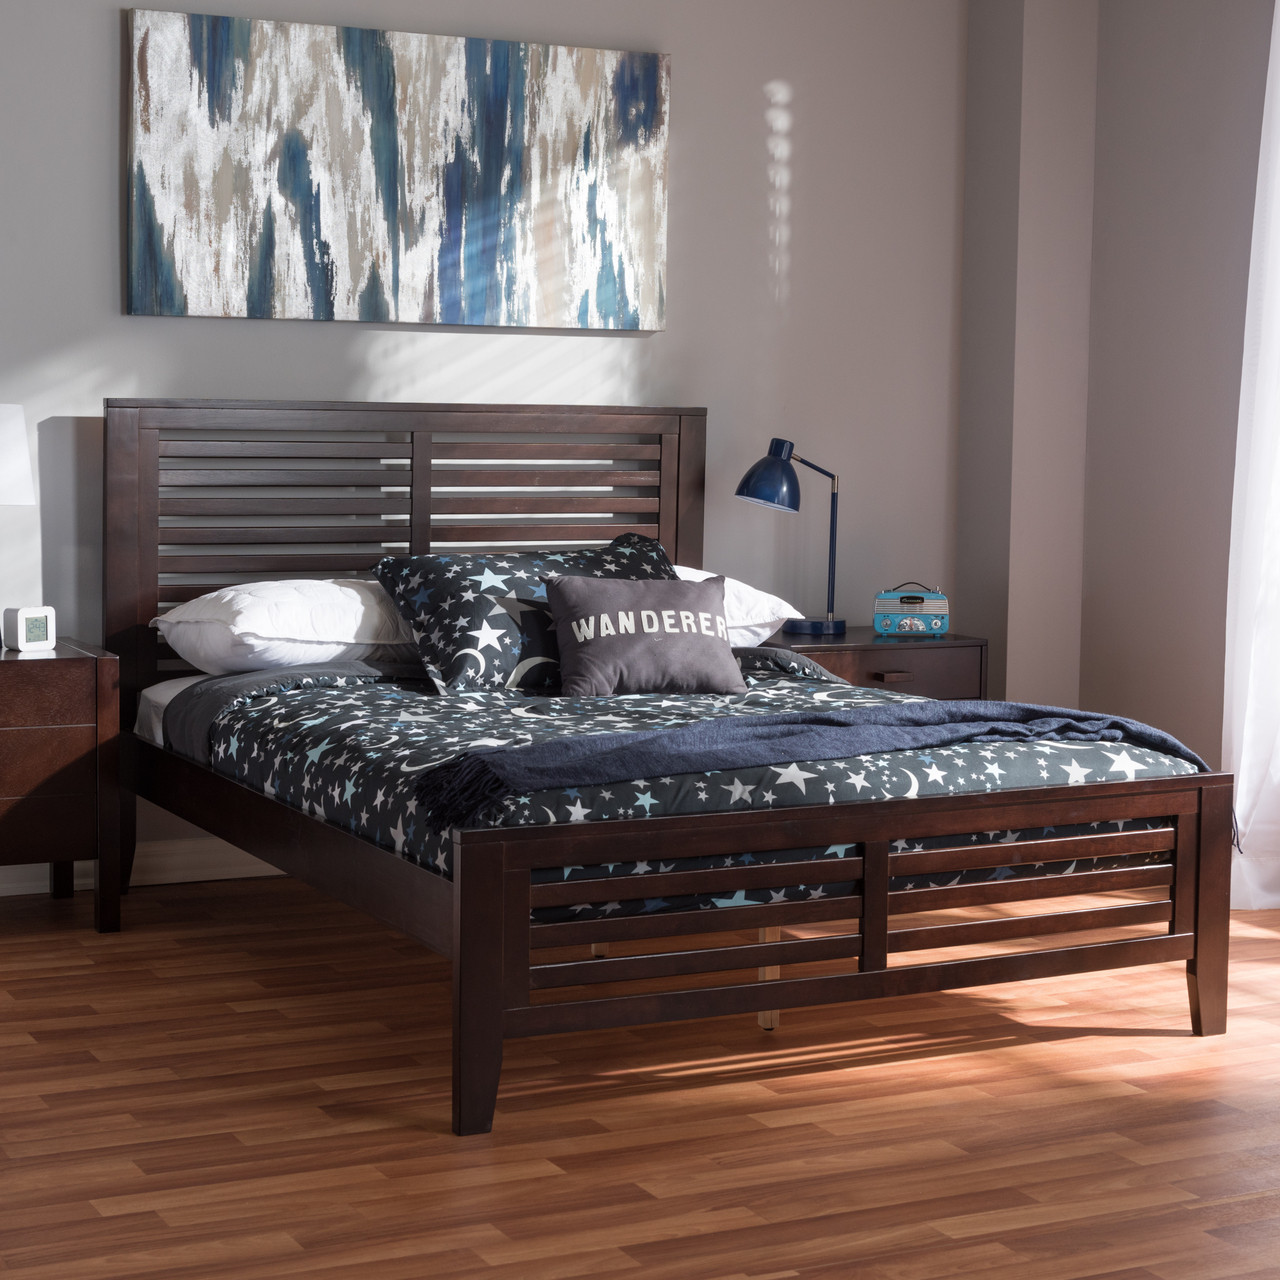 e3b4299c31 Zoom the image with the mouse. Baxton Studio Sedona Modern Classic Mission  Style Espresso Brown-Finished Wood Full Platform Bed